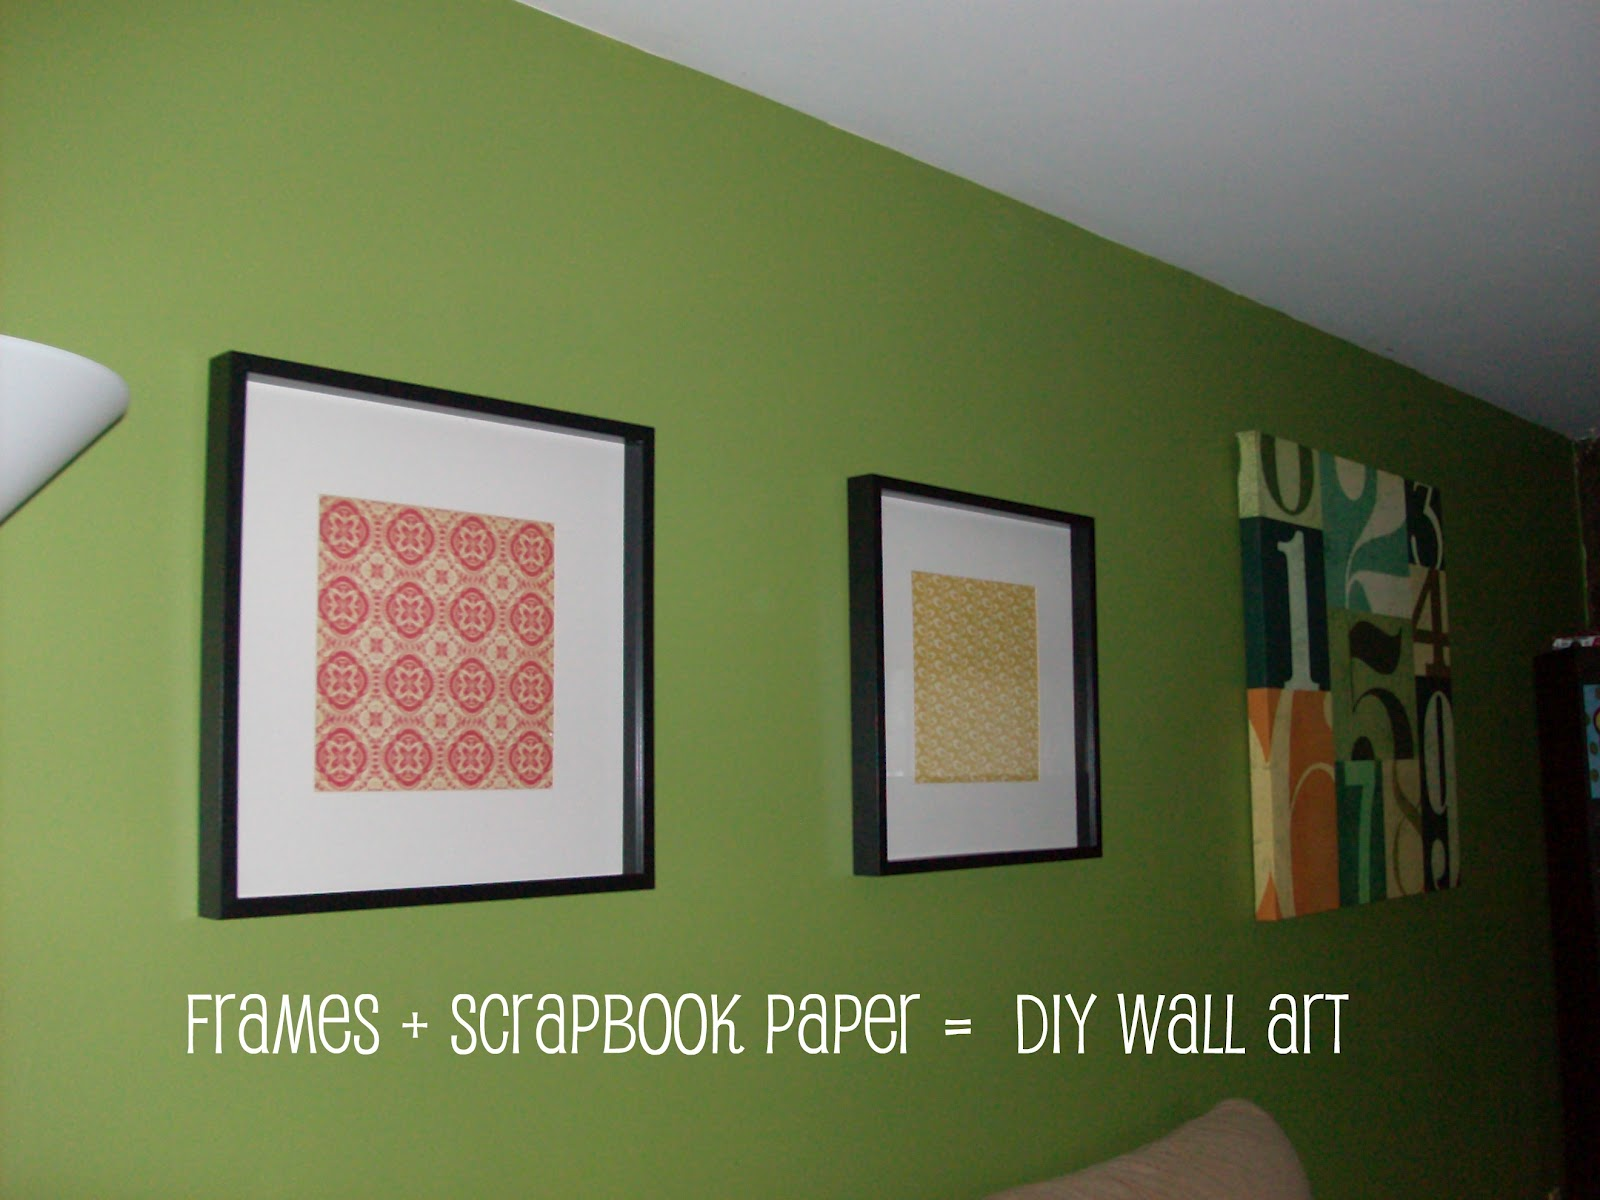 A Dozen Years Later: Frames + Scrapbook Paper = DIY Wall Art